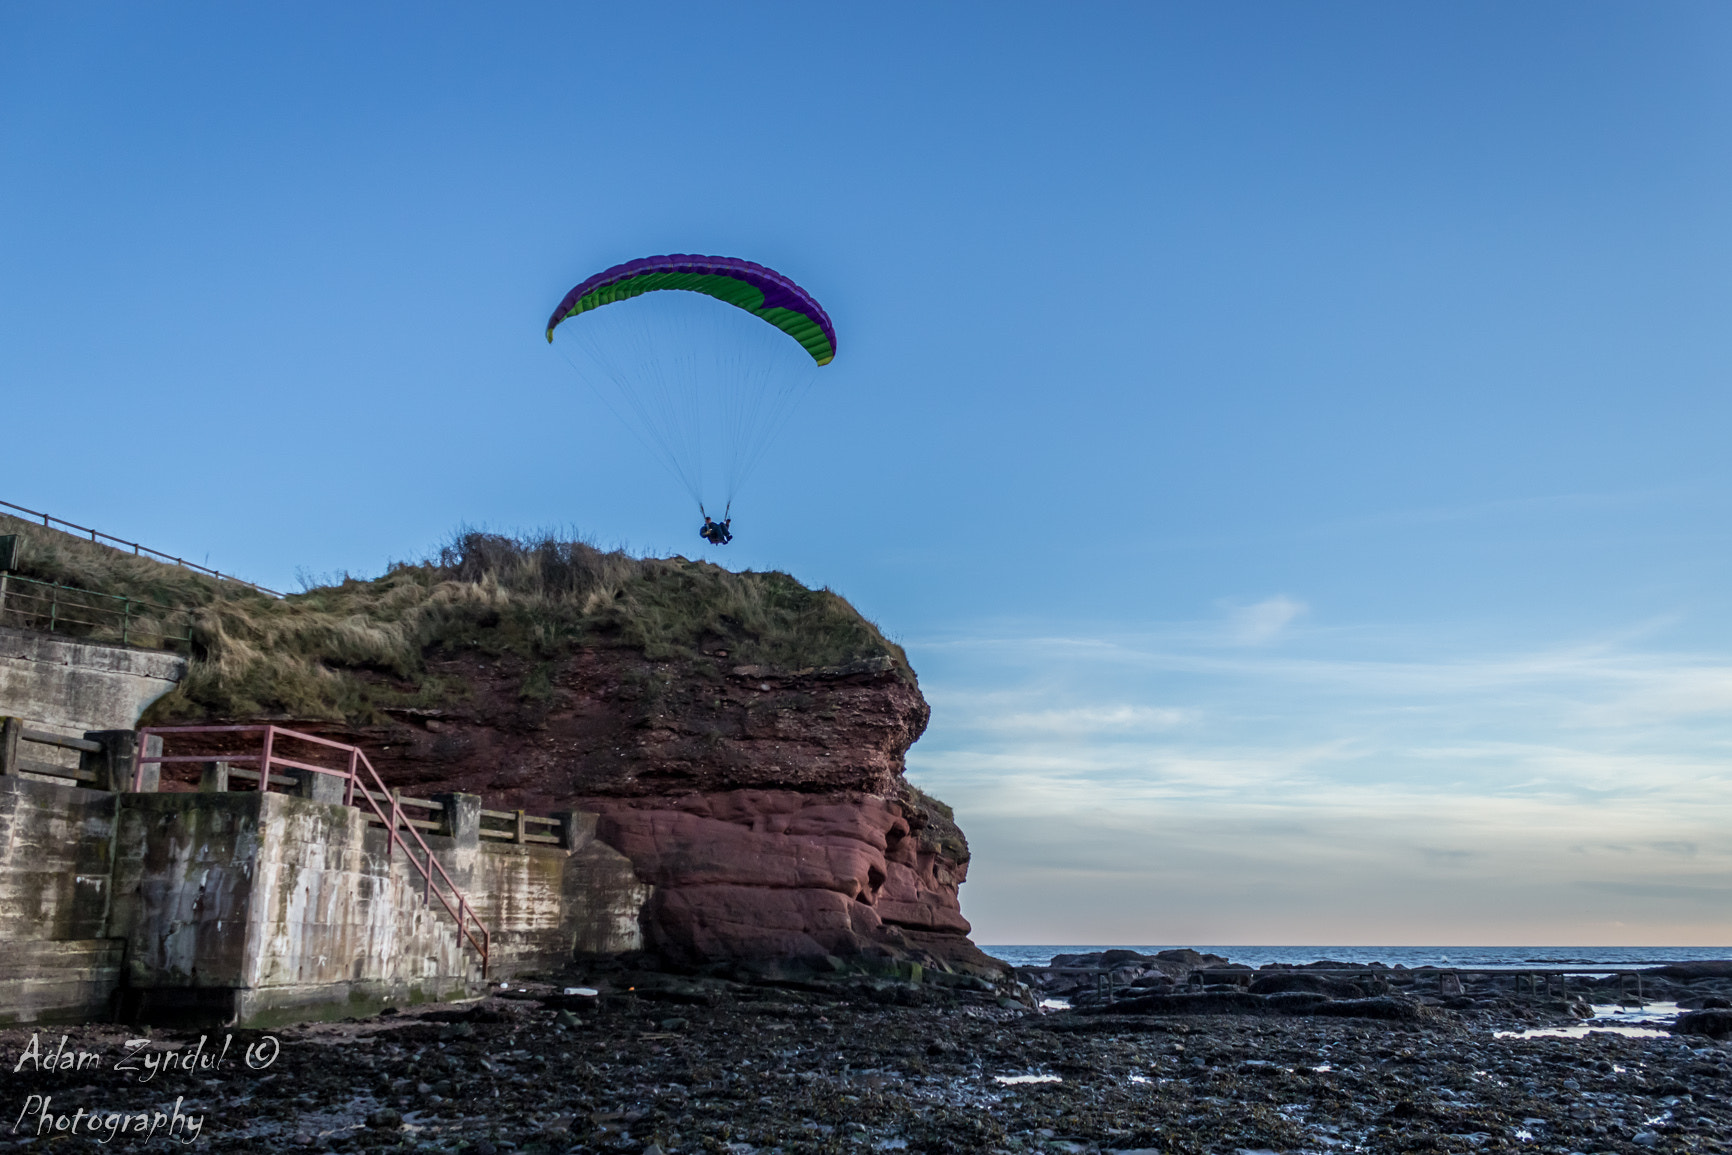 Photograph Jumping from the top of the cliff by Adam Z on 500px